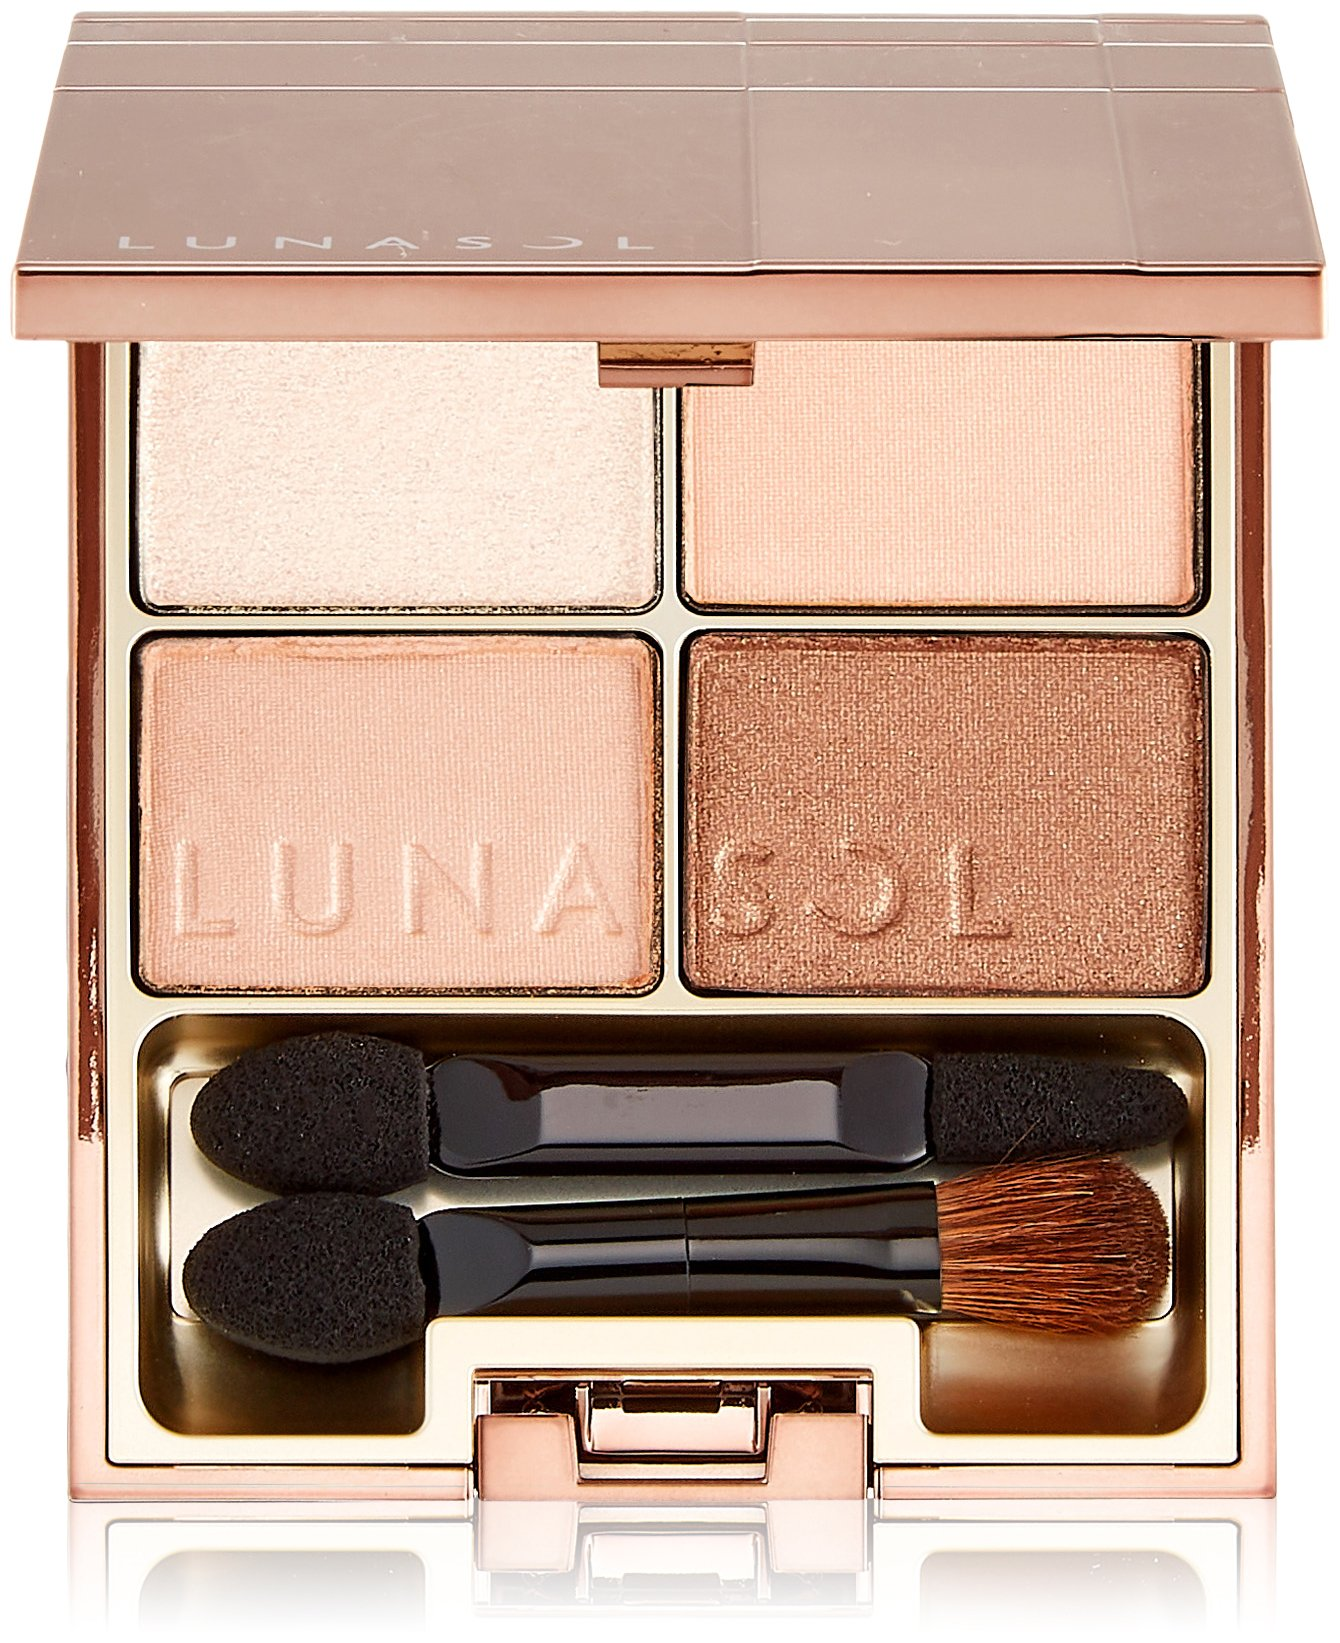 Lunasol Eye Shadow Skin Modeling Eyes 01 Beige Beige